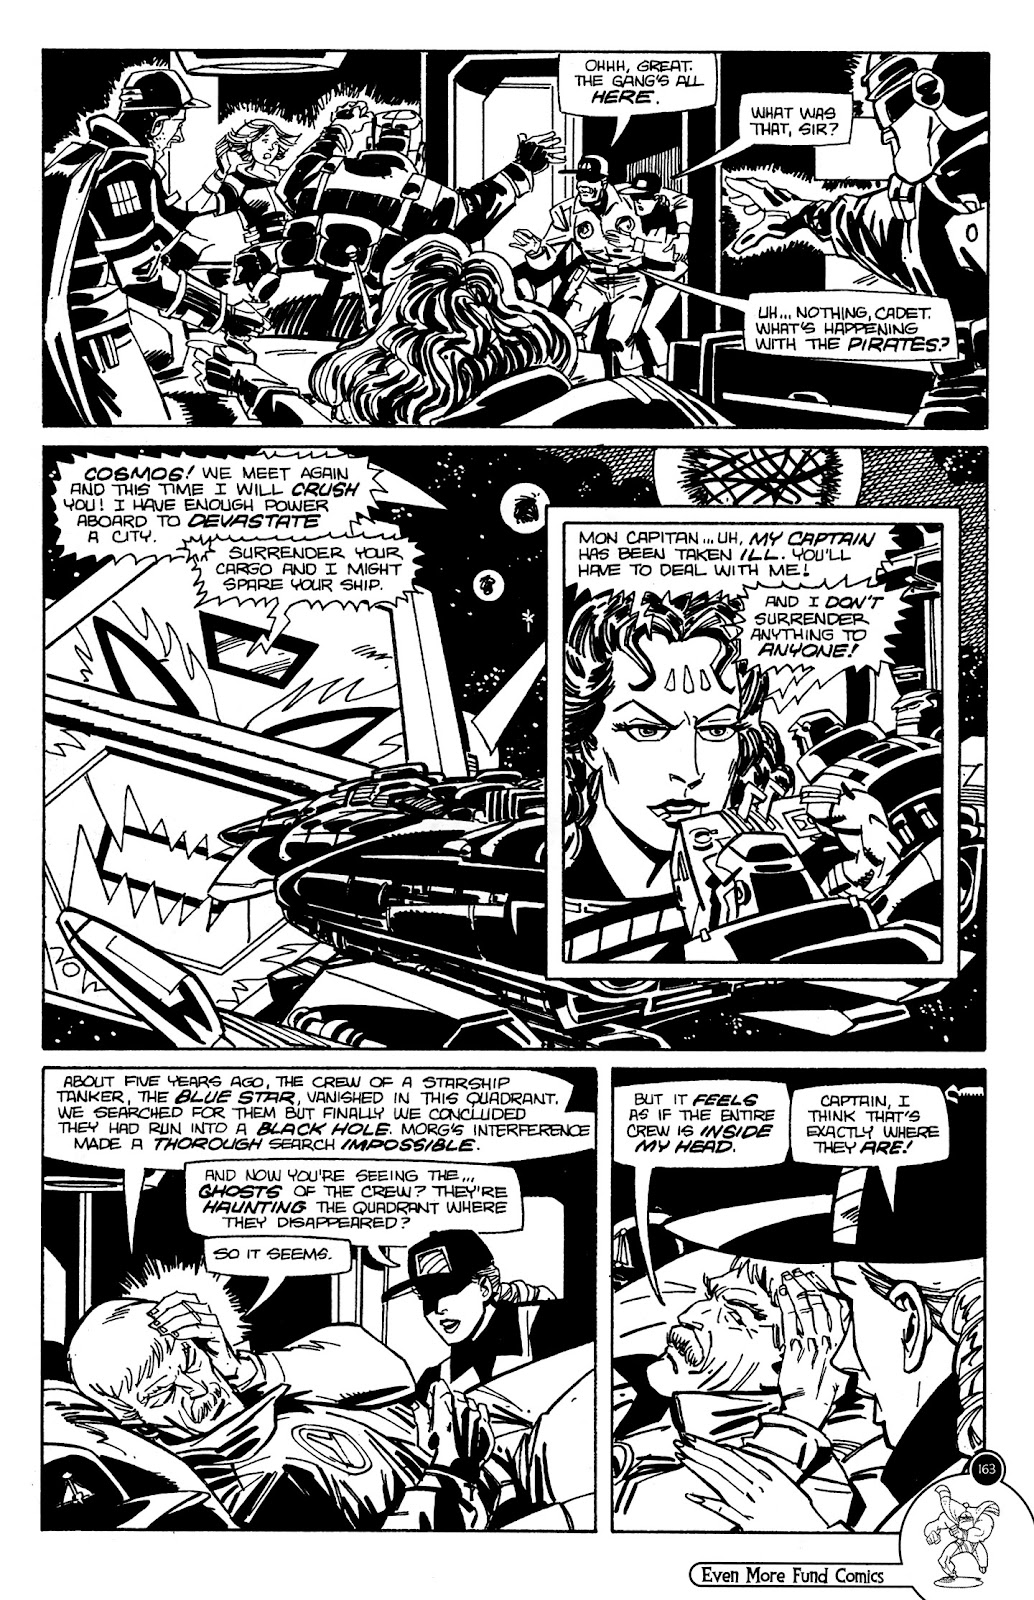 Read online Even More Fund Comics comic -  Issue # TPB (Part 2) - 66